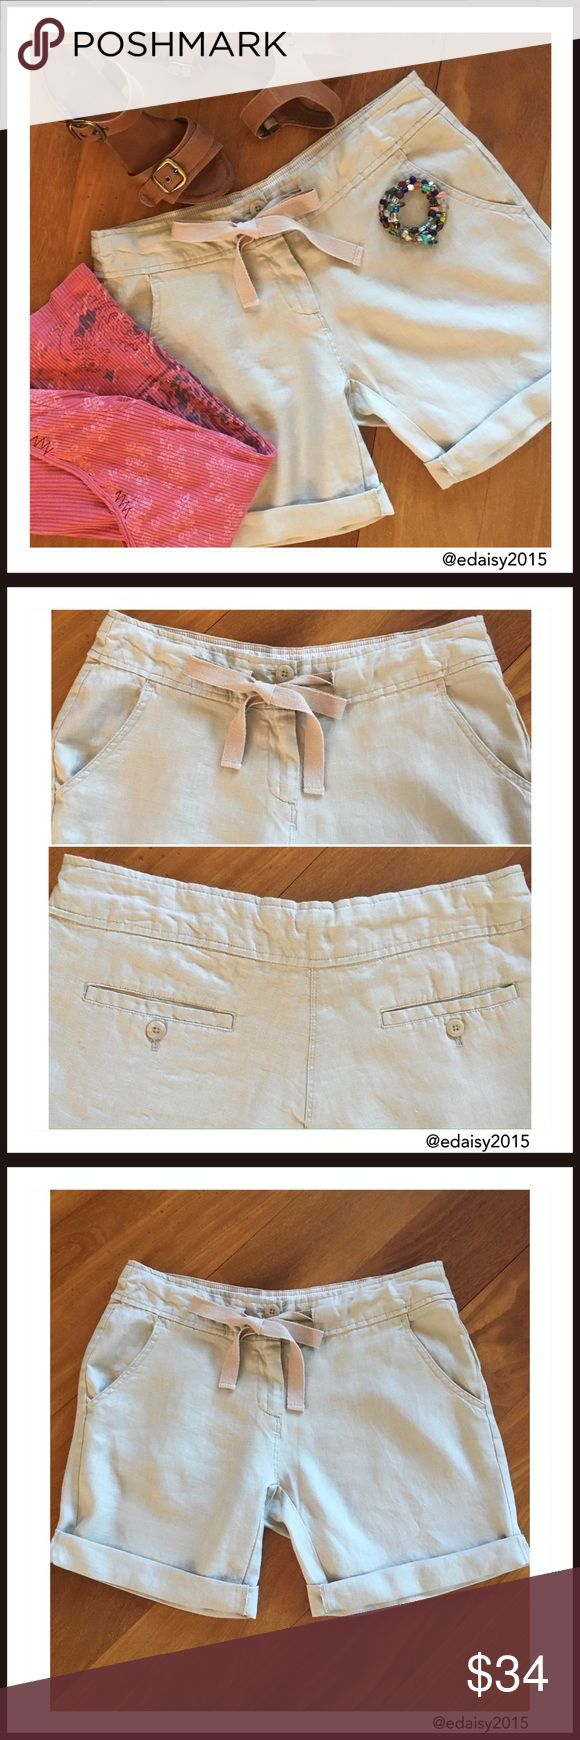 🔴DISCOUNTED SHIPPING-RED DOT SALE🔴 Linen Shorts These Willi Smith linen bermuda shorts are so comfortable. They are size 4, the color is Khaki. I've worn them a couple of times, they're  like new.   👛 No Trade 🌸 All Offers 🌸 Click The Offer Button 🌷 Smoke Free Home  💕 Have a great day, Darla Willi Smith Shorts Bermudas